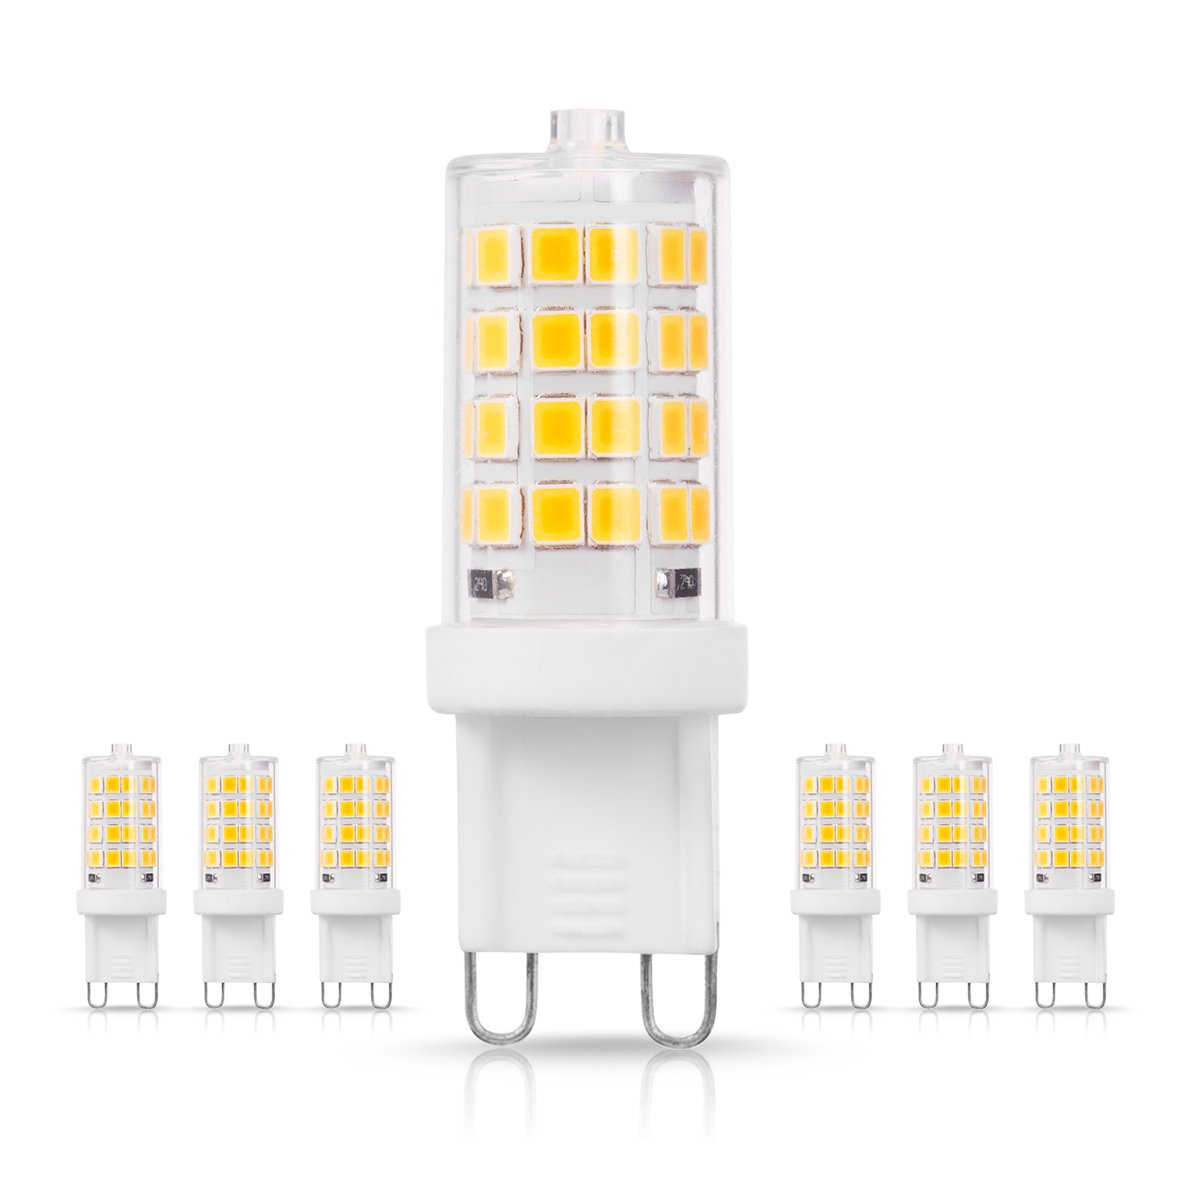 Home Decorative 4Pack 20W Equivalent DORESshop C7 Blue Mini Candelabra LED Bulb C7 LED Bulb No Dimmable 2W Clear Glass Cover E12 Candle Base 200Lumens Night Light Suitable for/Front Porch